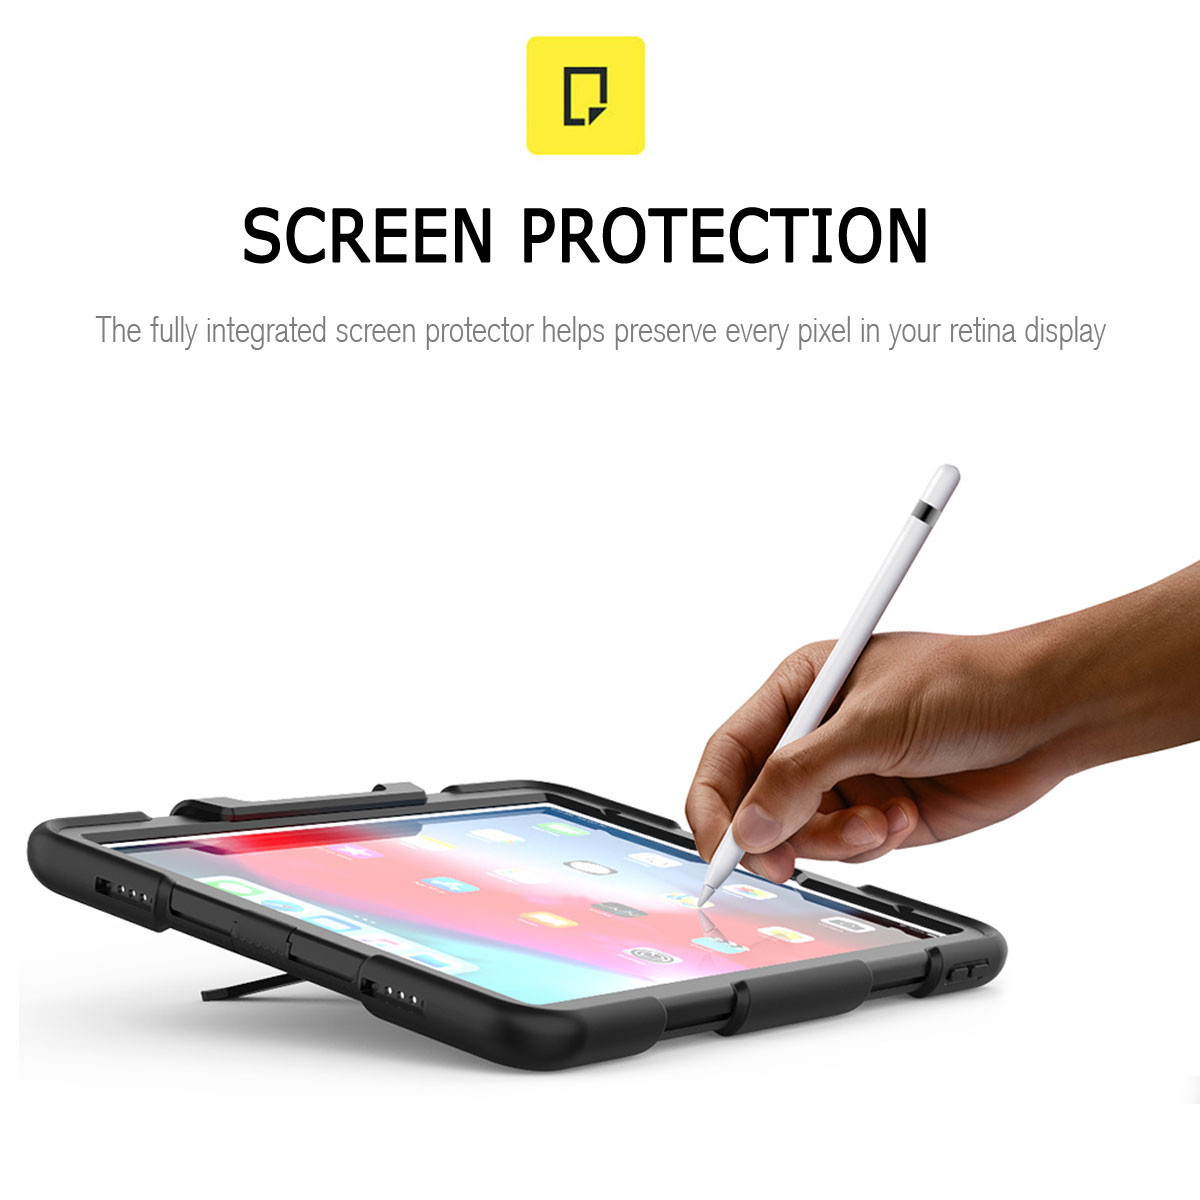 For-Apple-iPad-Pro-11-034-Inch-2018-with-Screen-Protector-Shockproof-Hybrid-Case thumbnail 16